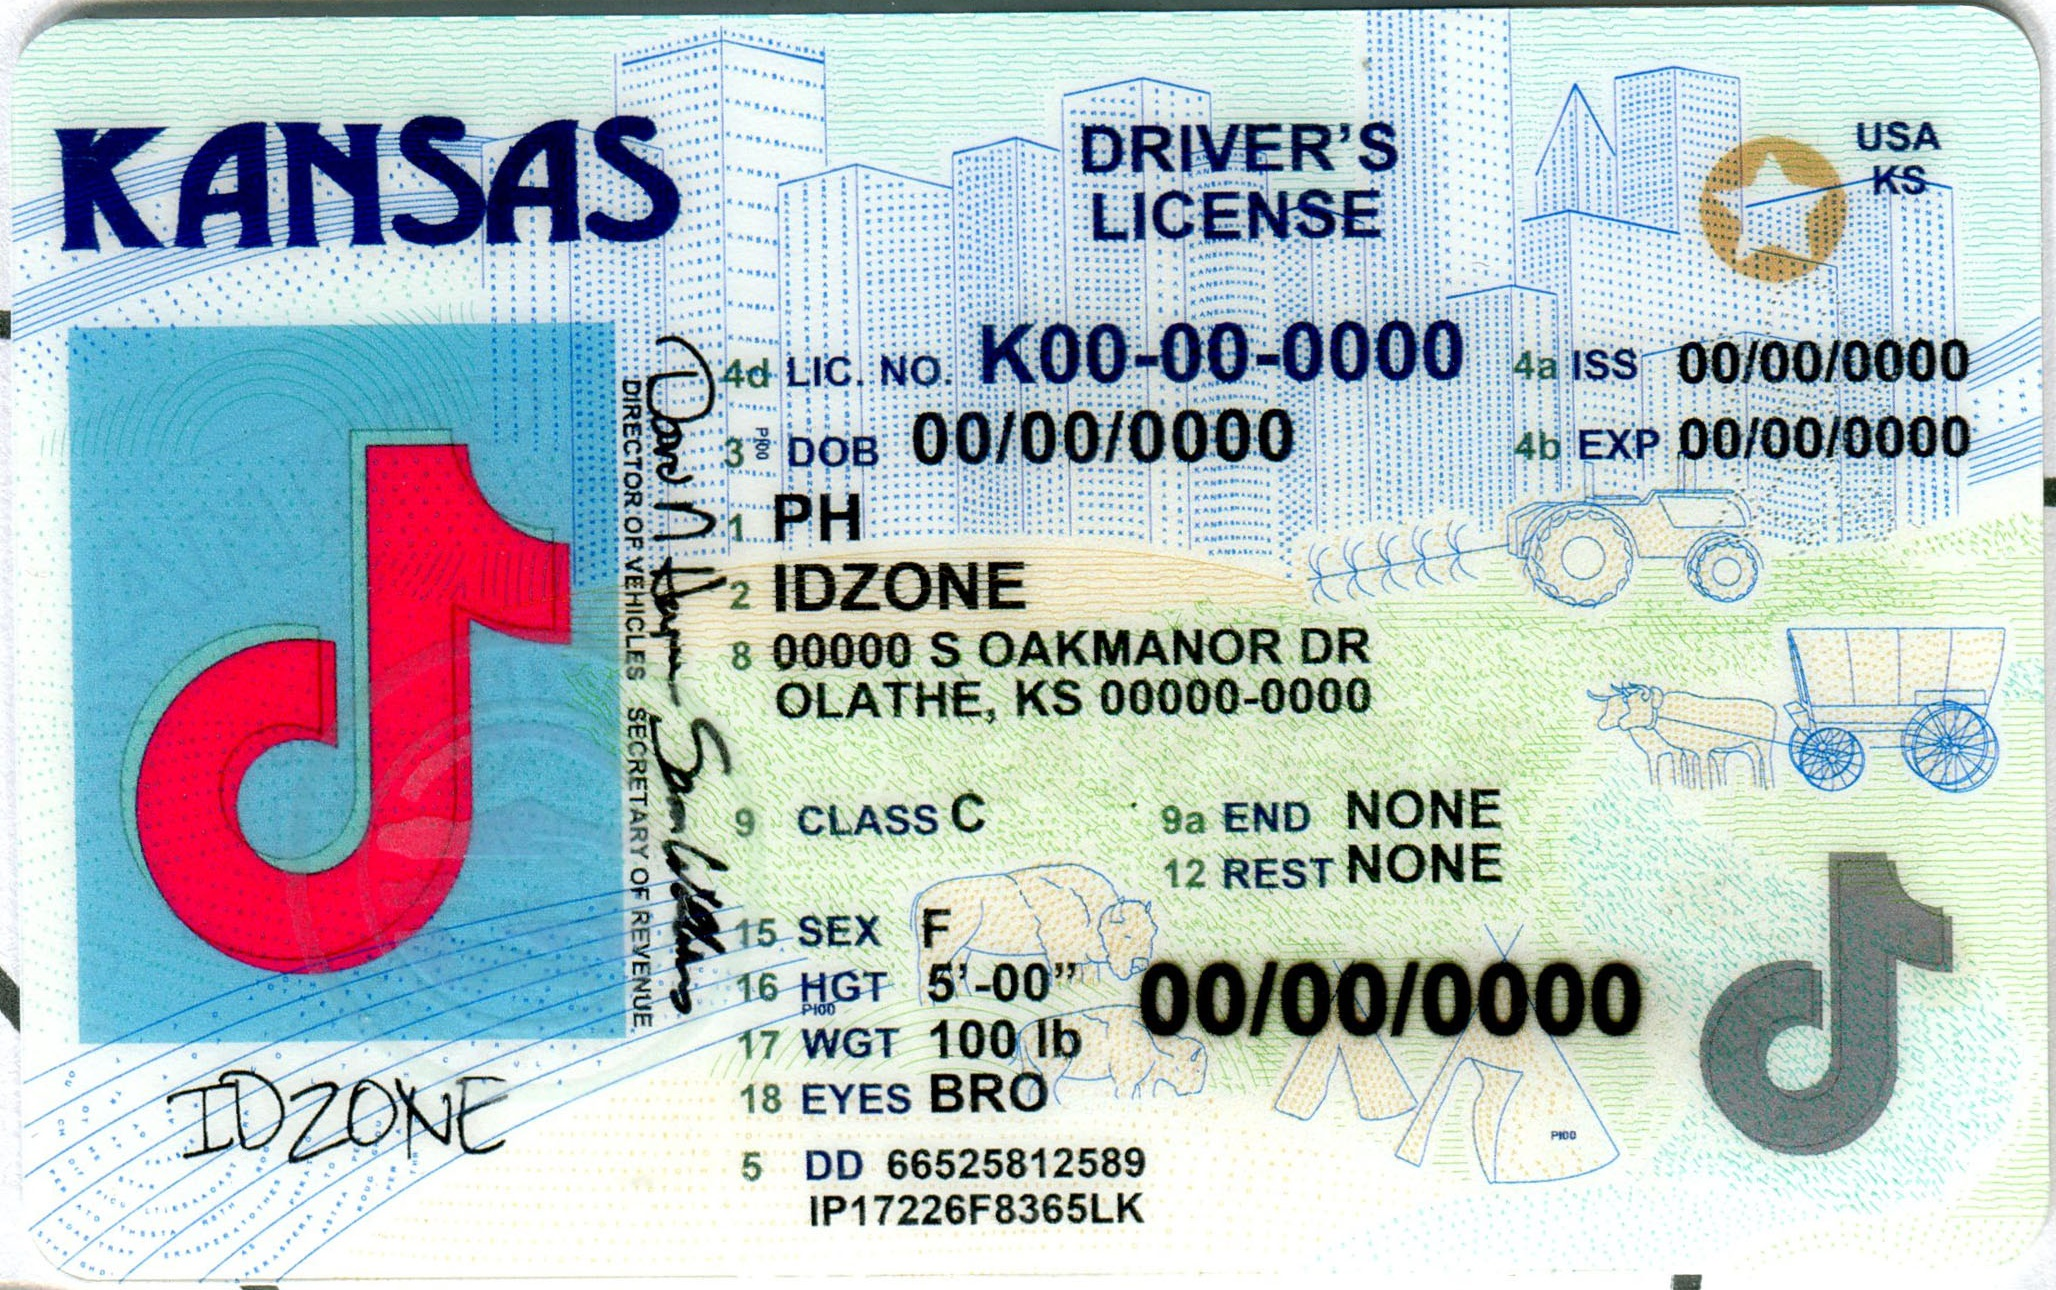 KANSAS-New buy fake id